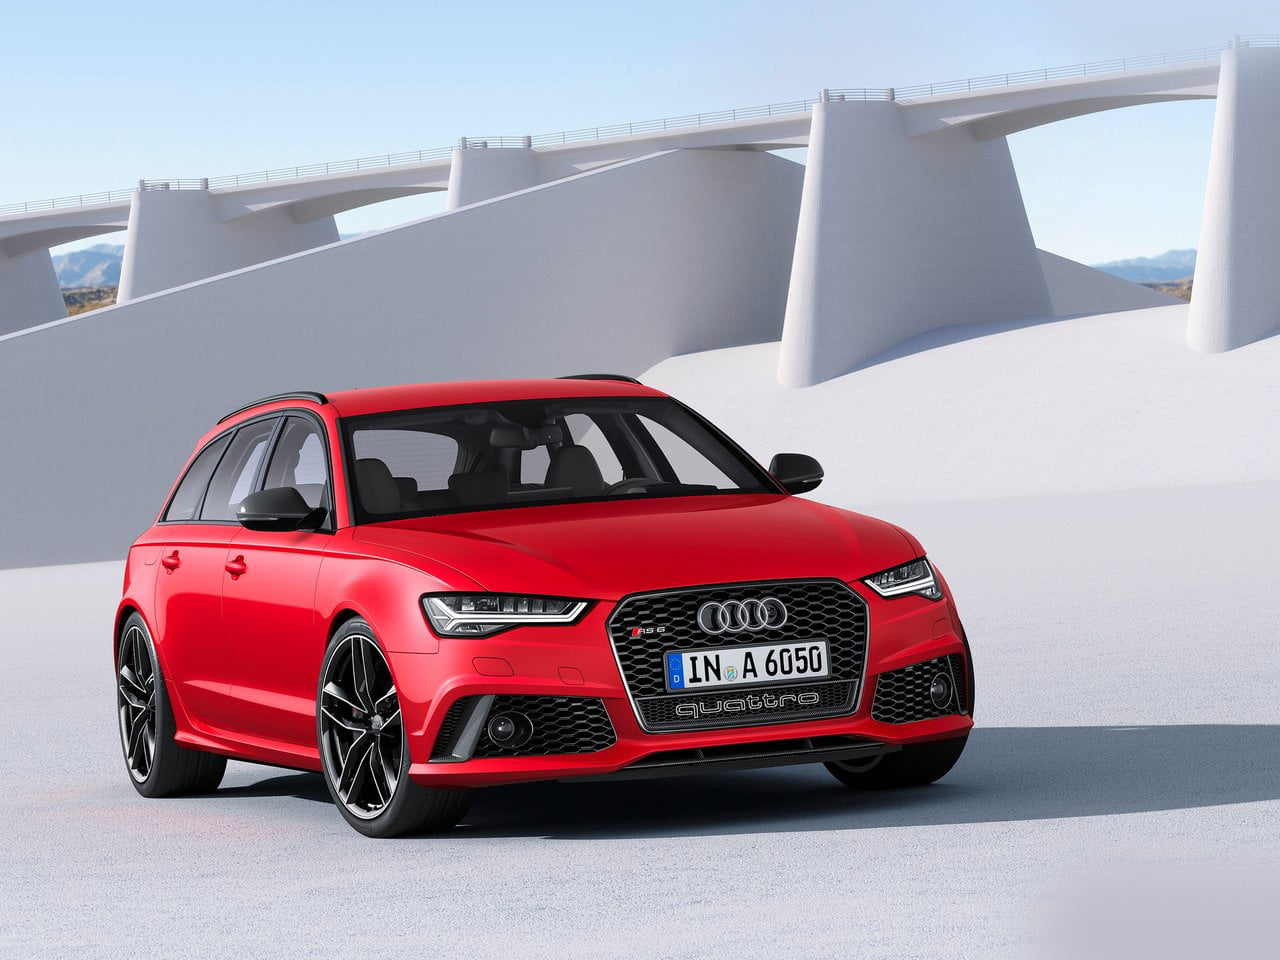 Audi Rs6 Avant India Price Pics Specification Features